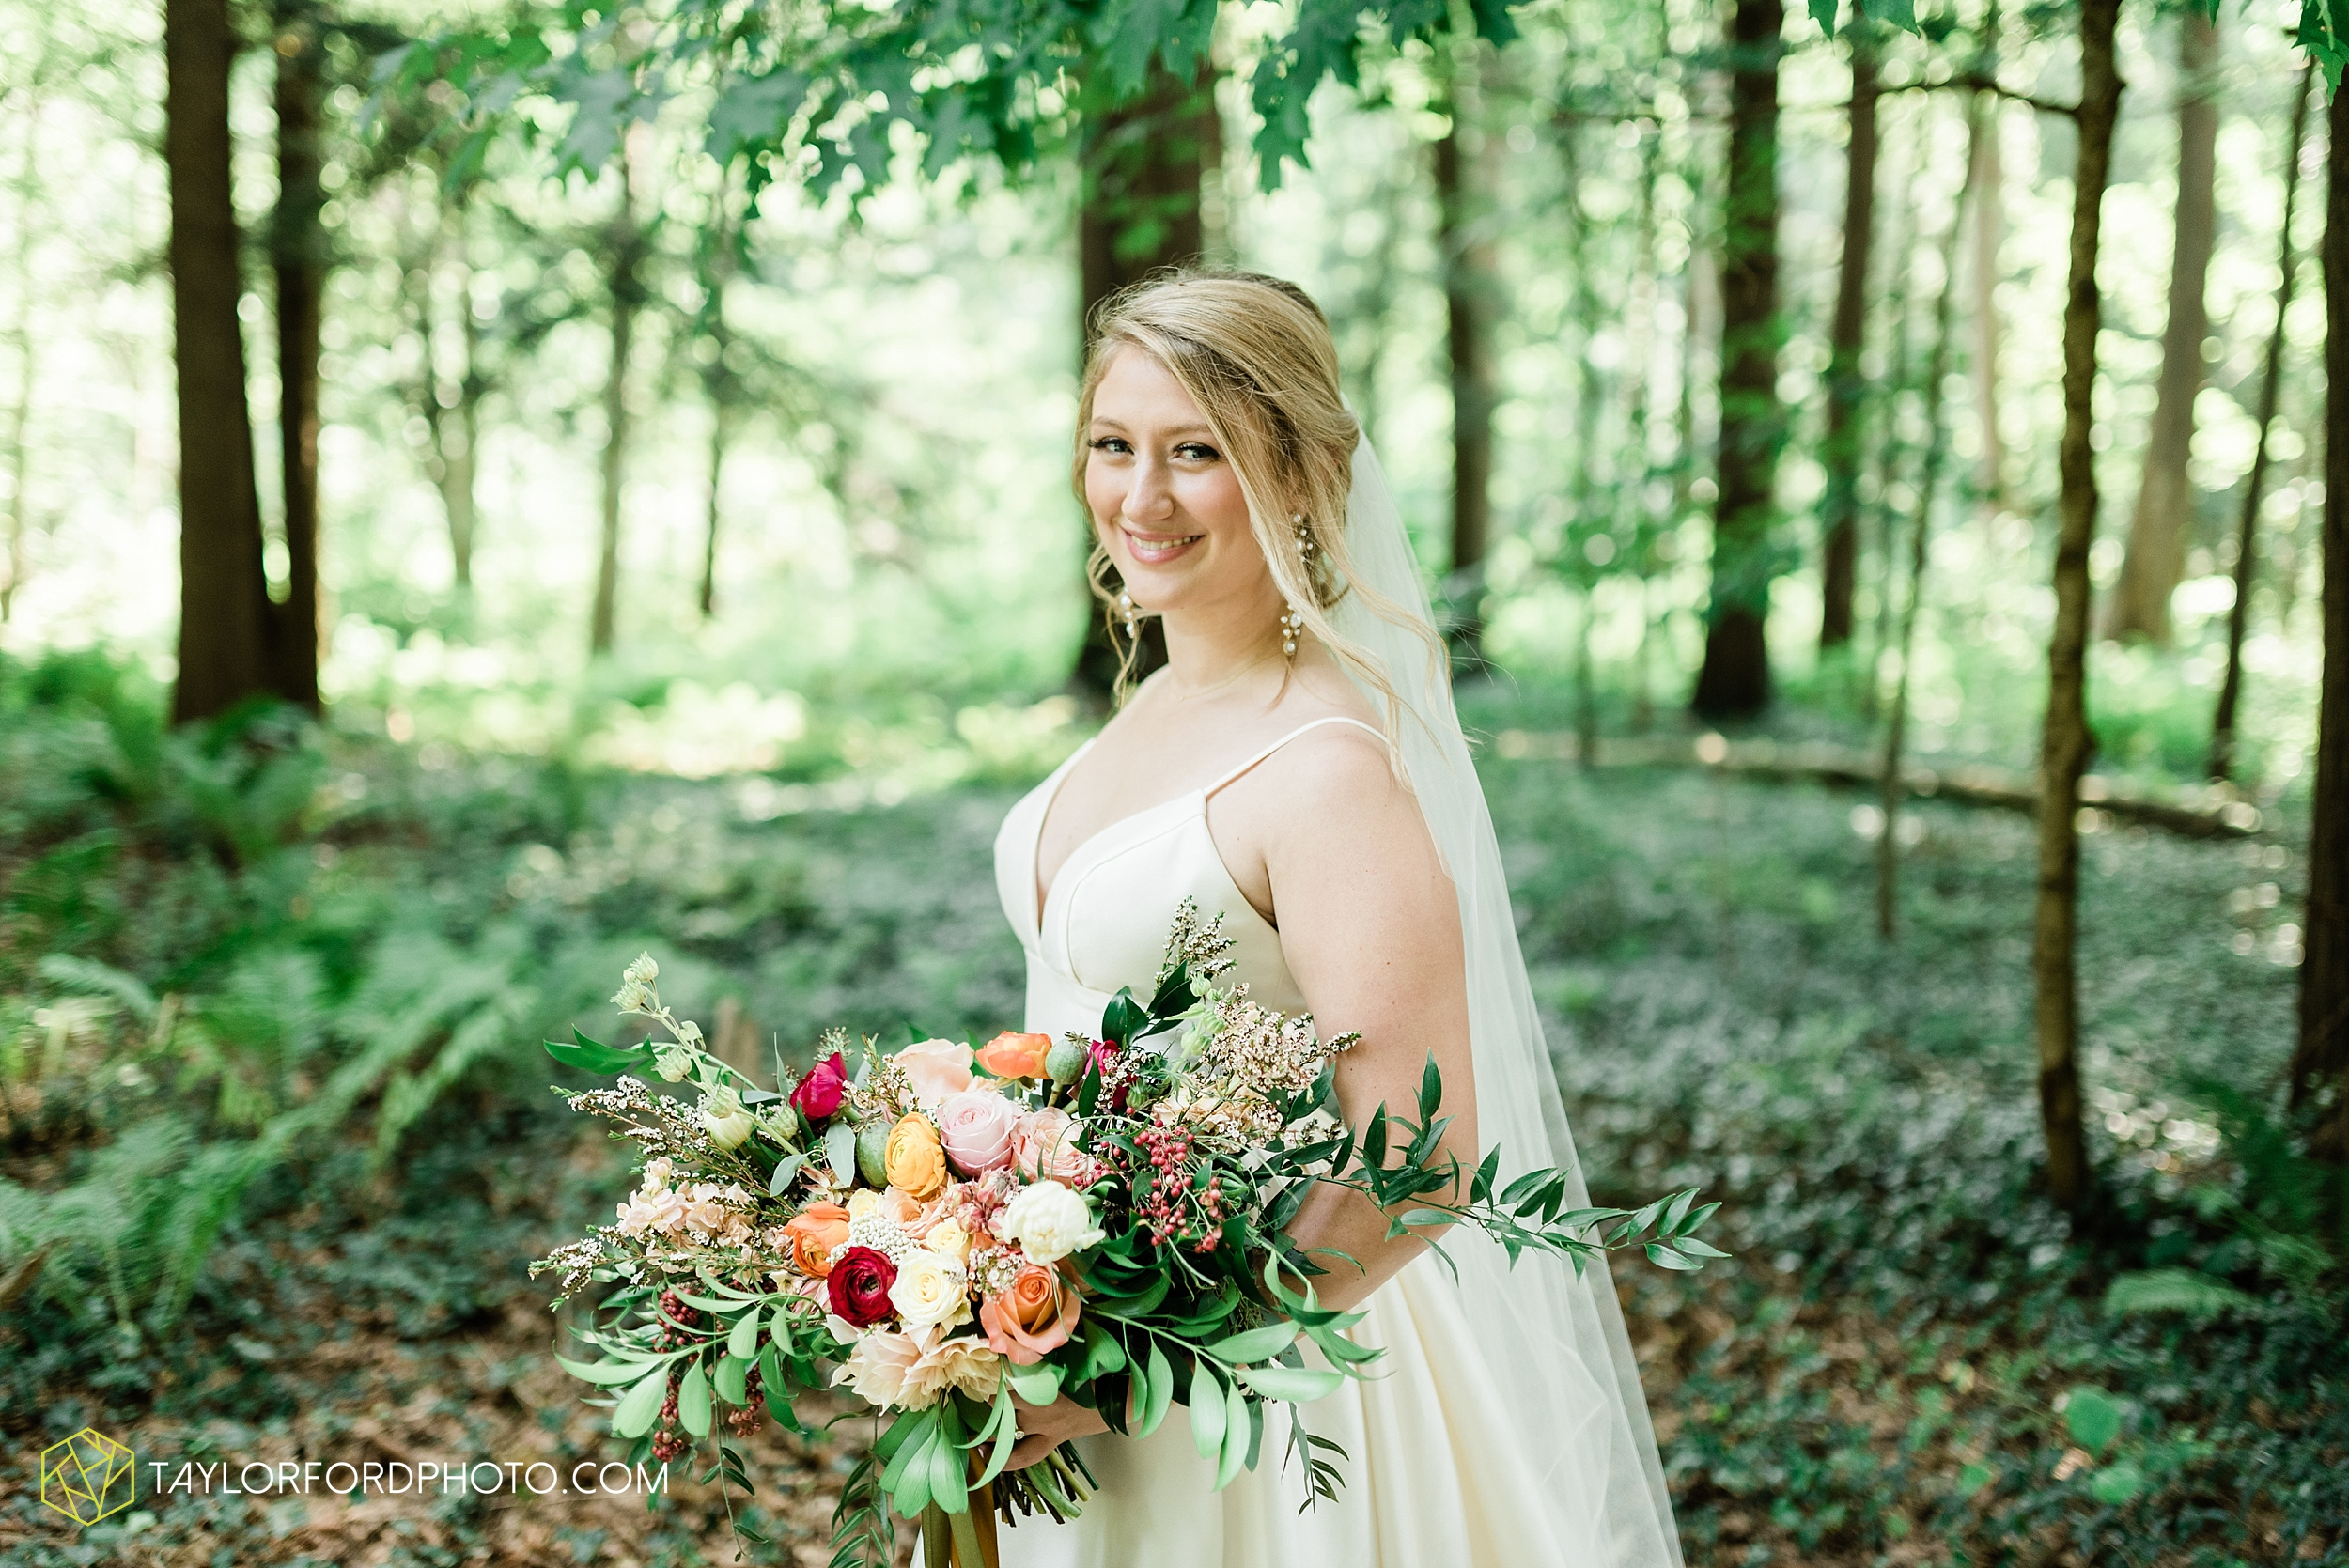 margot-may-evan-kohler-club-at-hillbrook-cleveland-chagrin-falls-outdoor-wedding-bhldn-gardenview-flowers-toledo-photographer-taylor-ford-photographer_9530.jpg